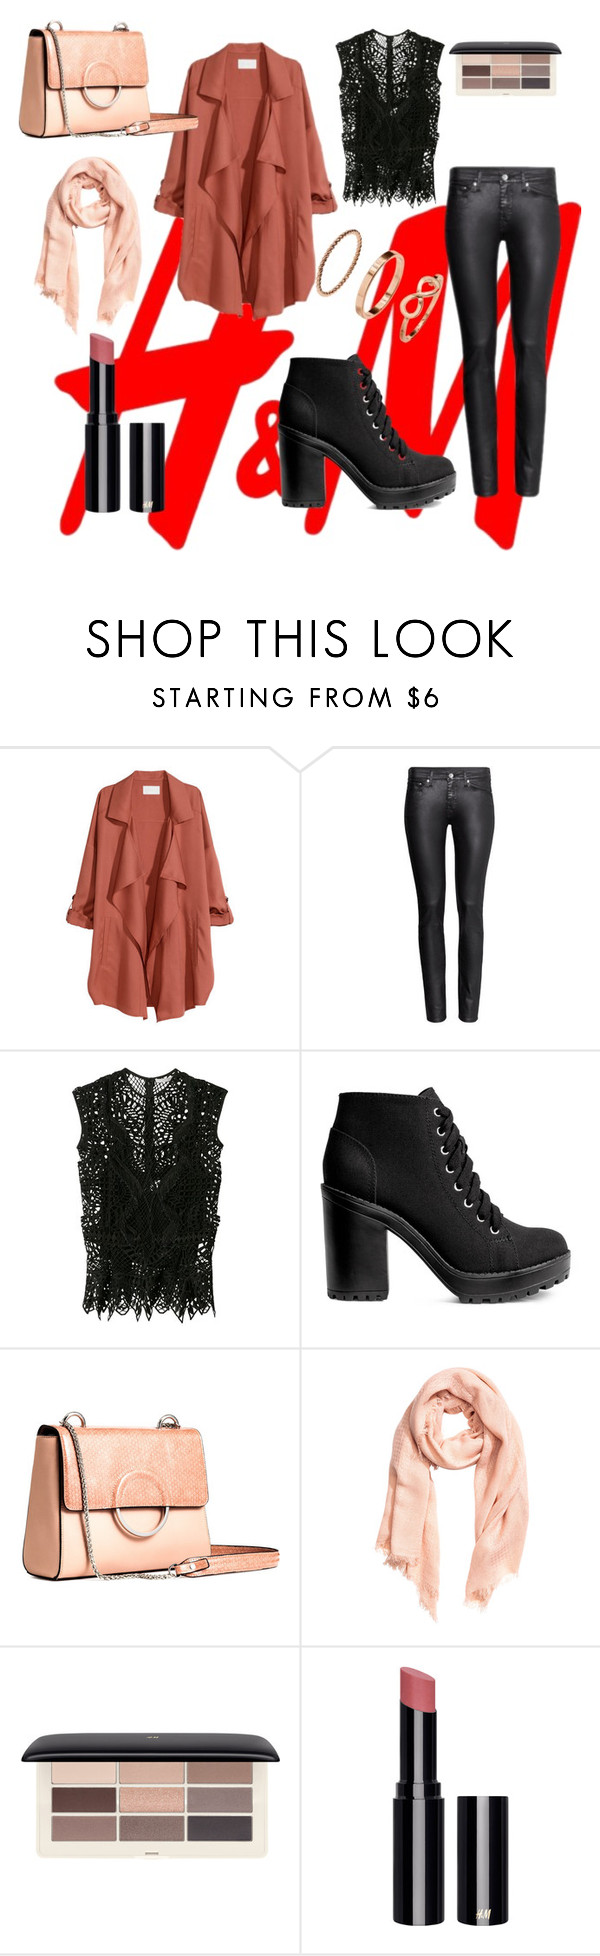 """""""H&M"""" by tammaras ❤ liked on Polyvore featuring H&M and Jonathan Simkhai"""